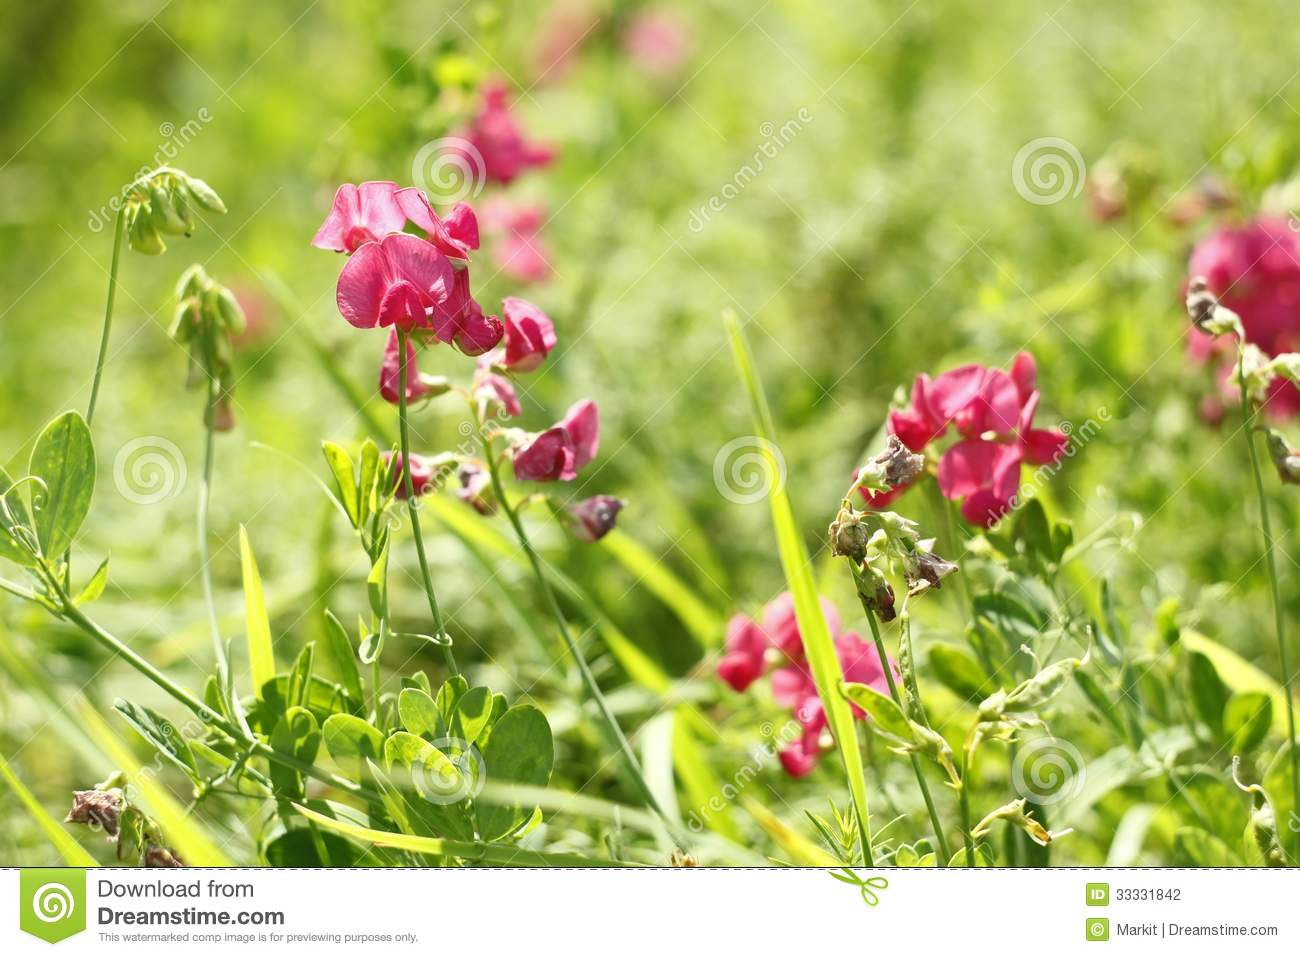 Red Flowers Of Leguminous Plant Stock Photography.